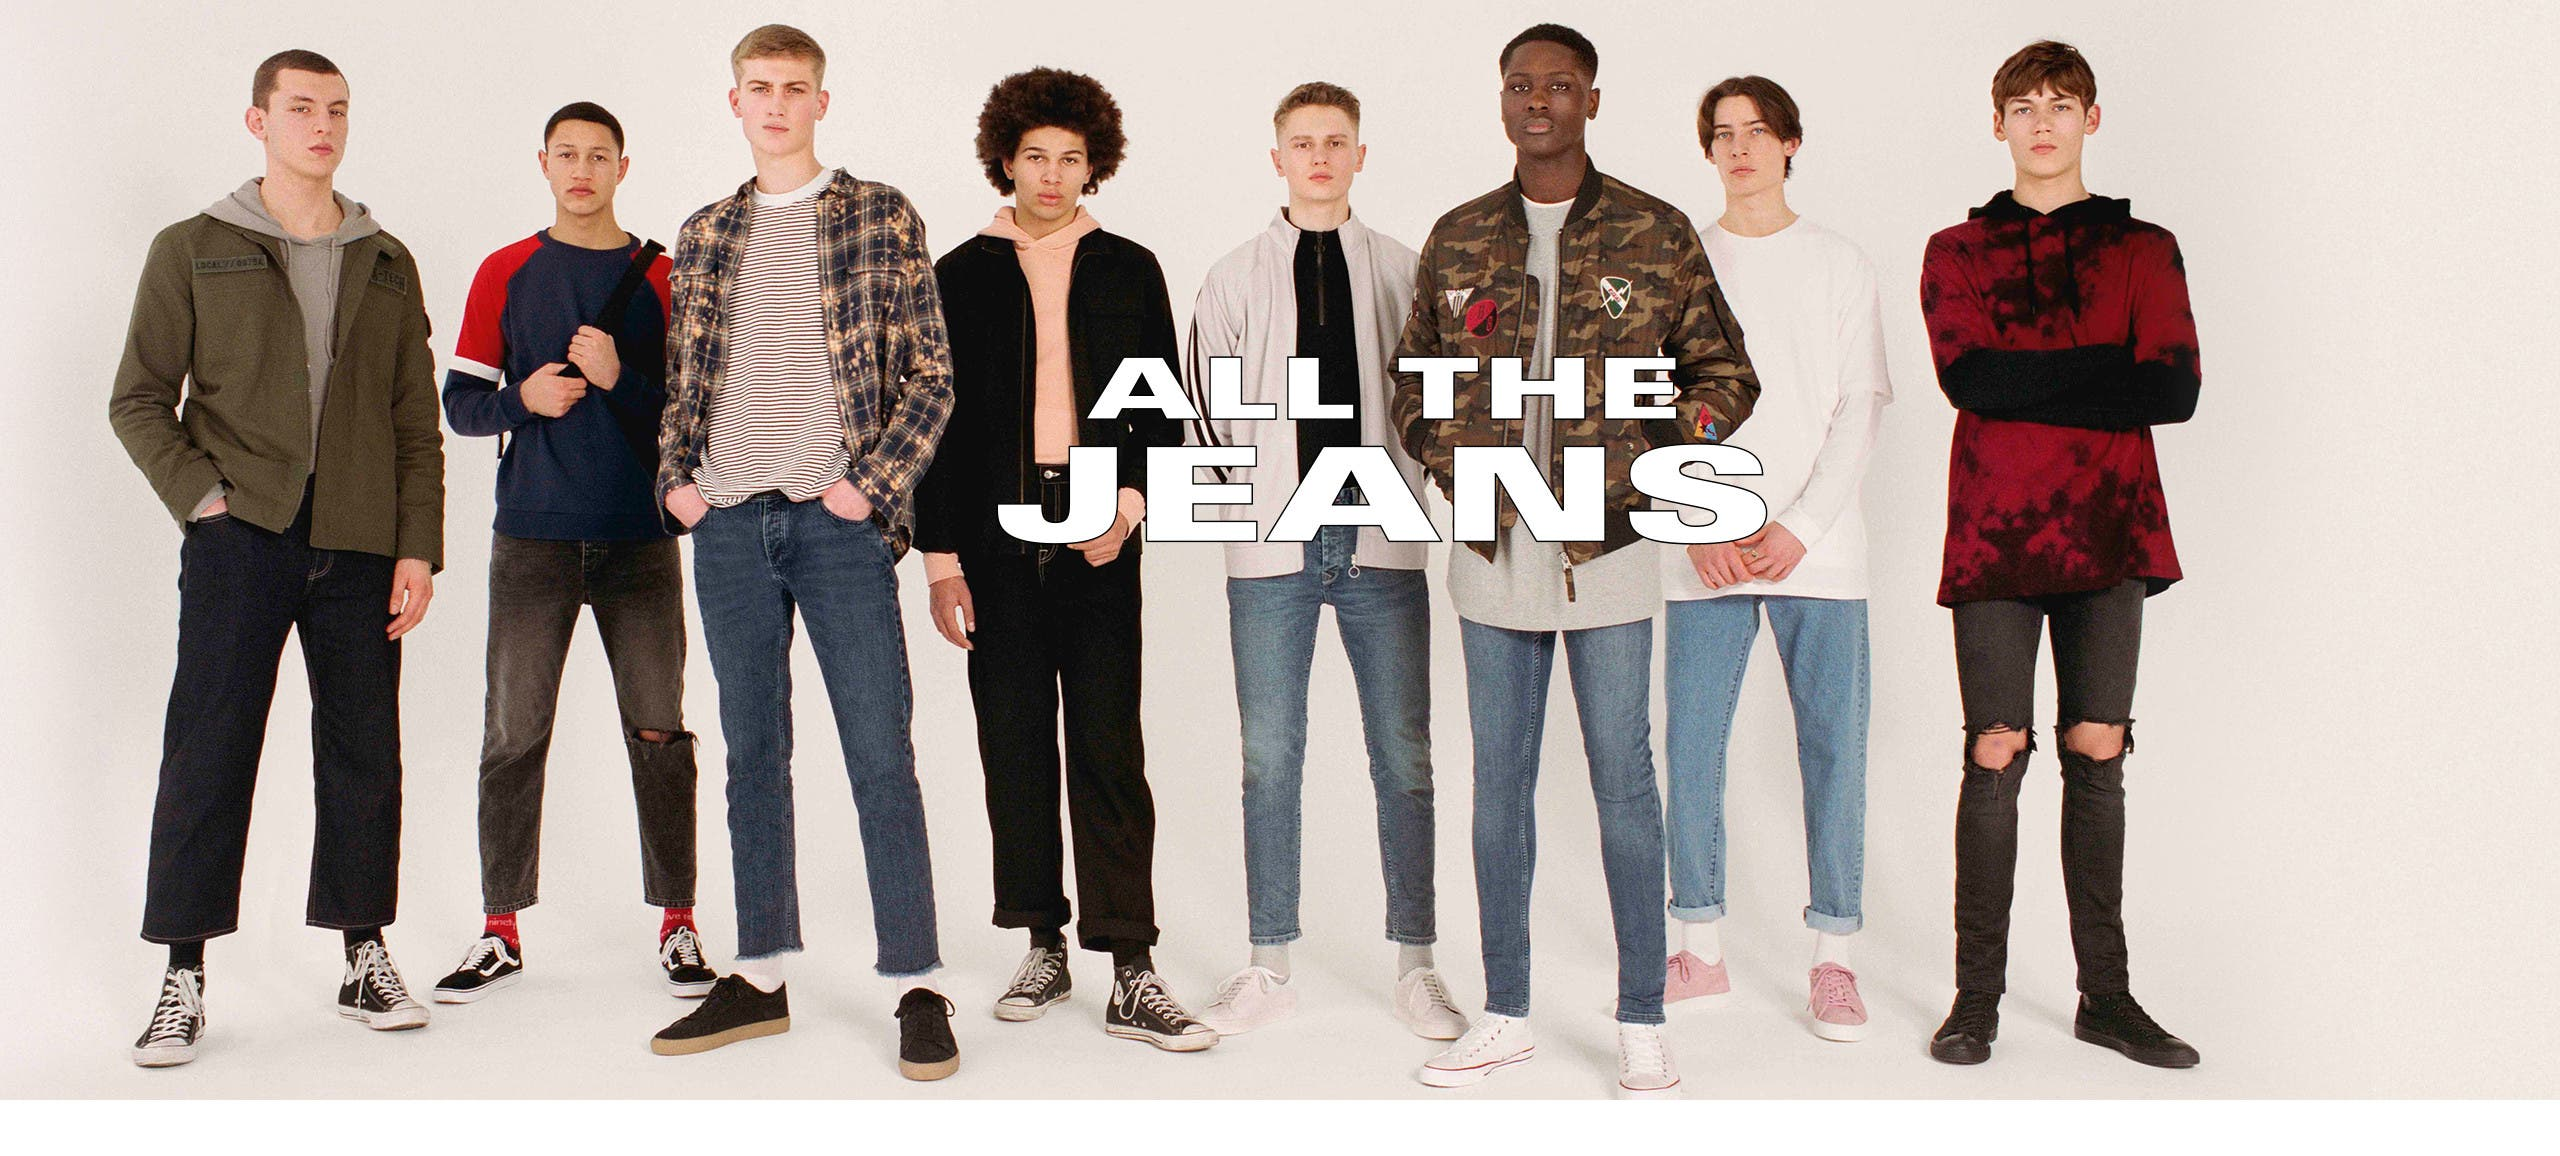 All the jeans, from Topman and more.